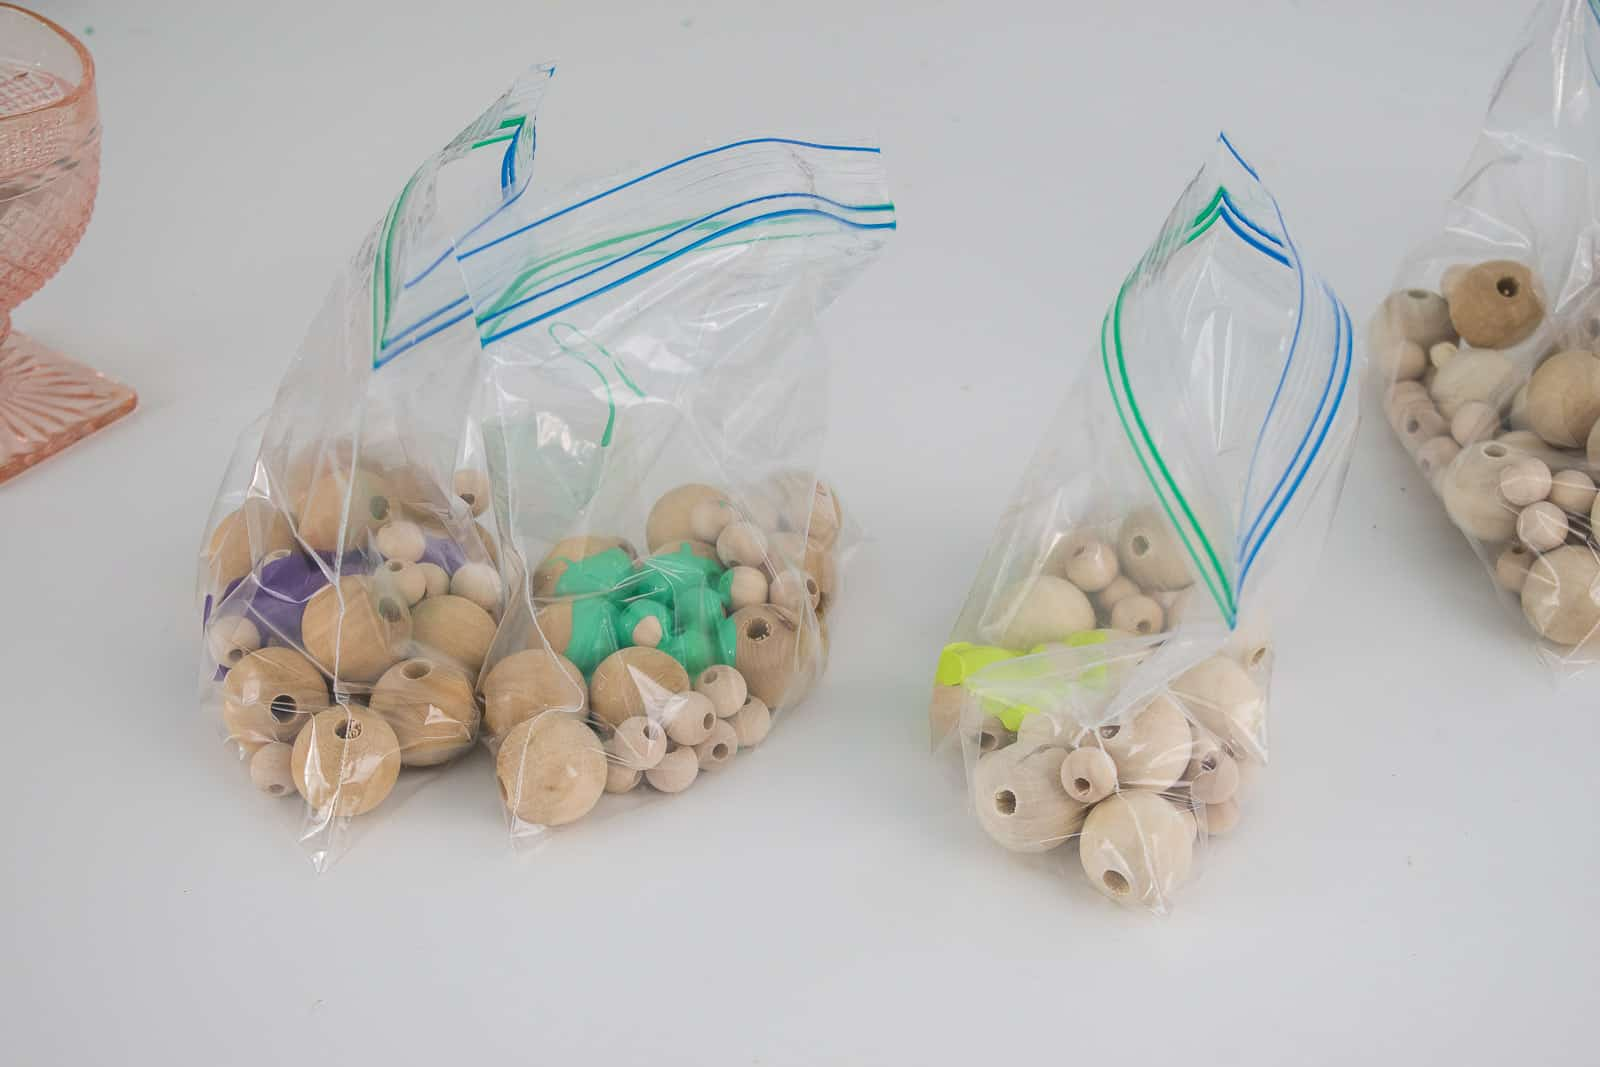 place beads and paint in plastic bag